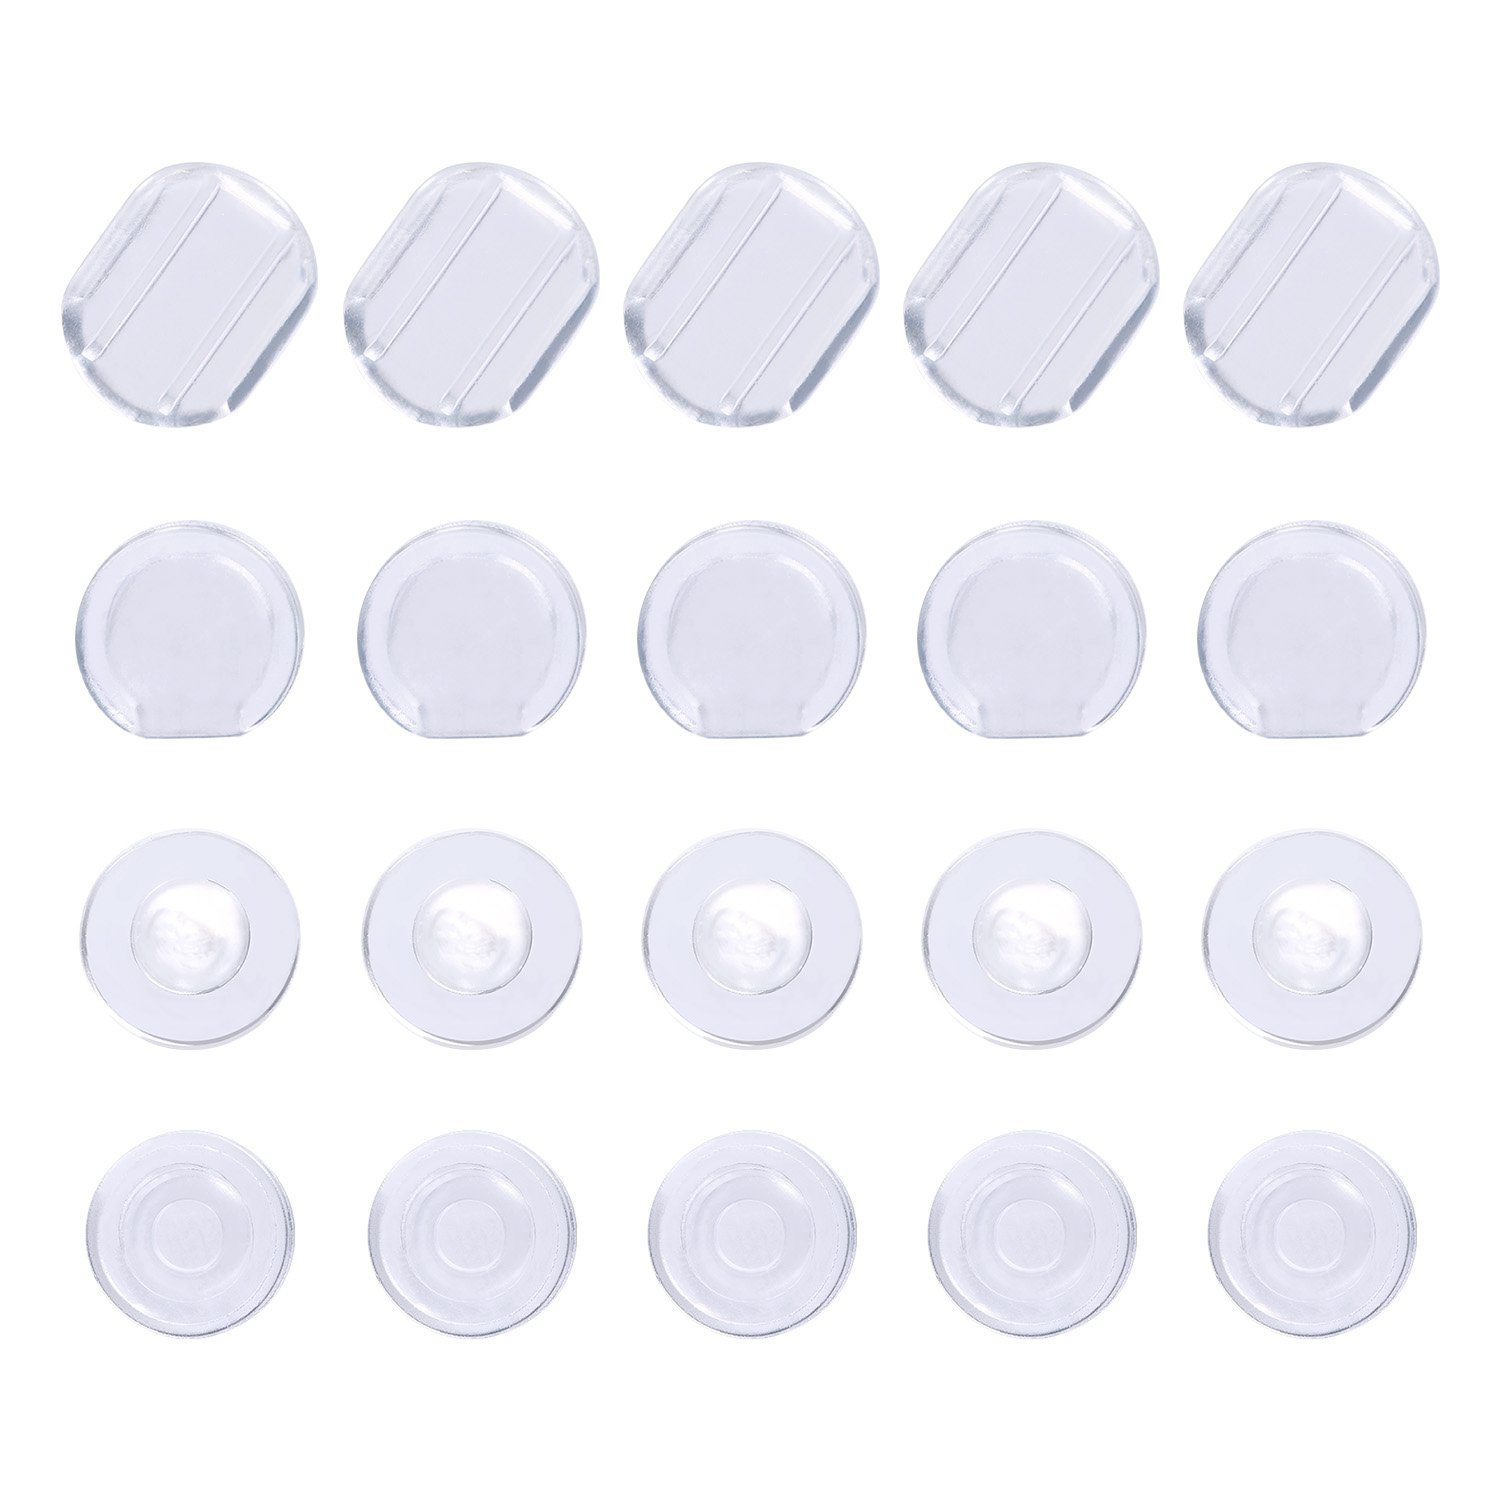 ... Bememo 50 Pieces Earring Pads Silicone Earring Cushion for Clip on Earrings